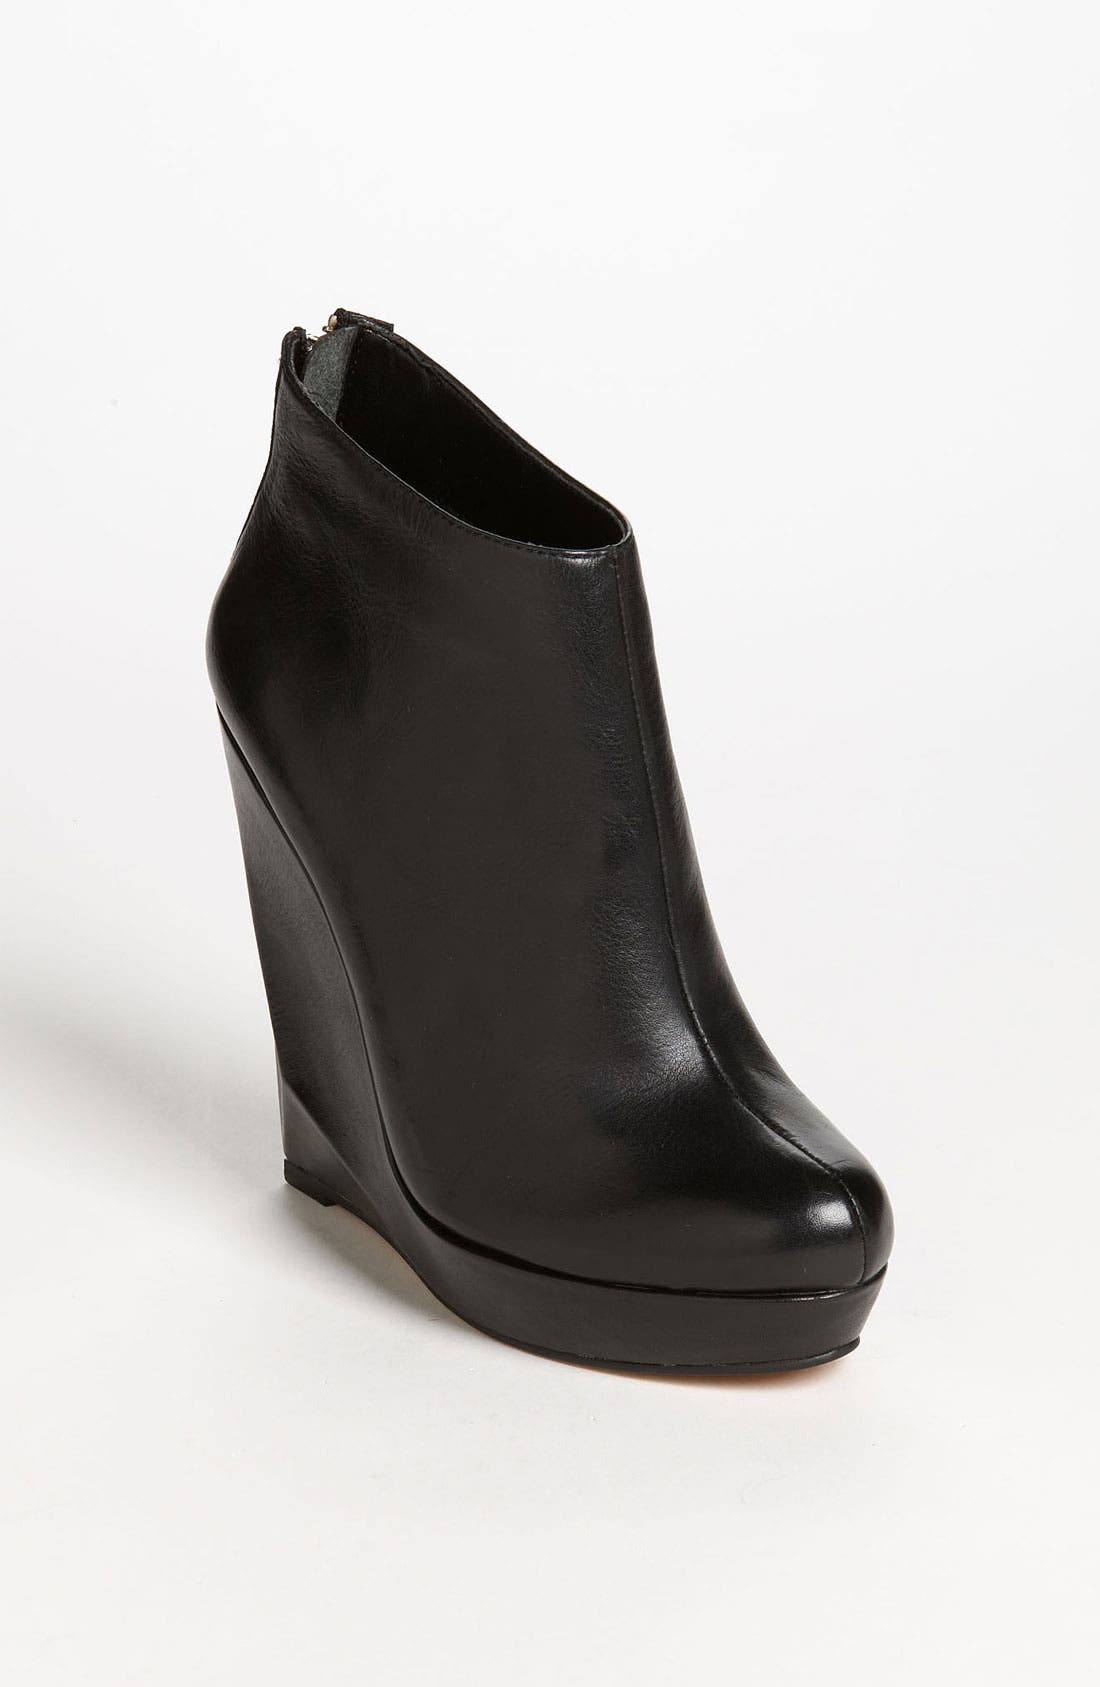 Main Image - Dolce Vita 'Fury' Bootie